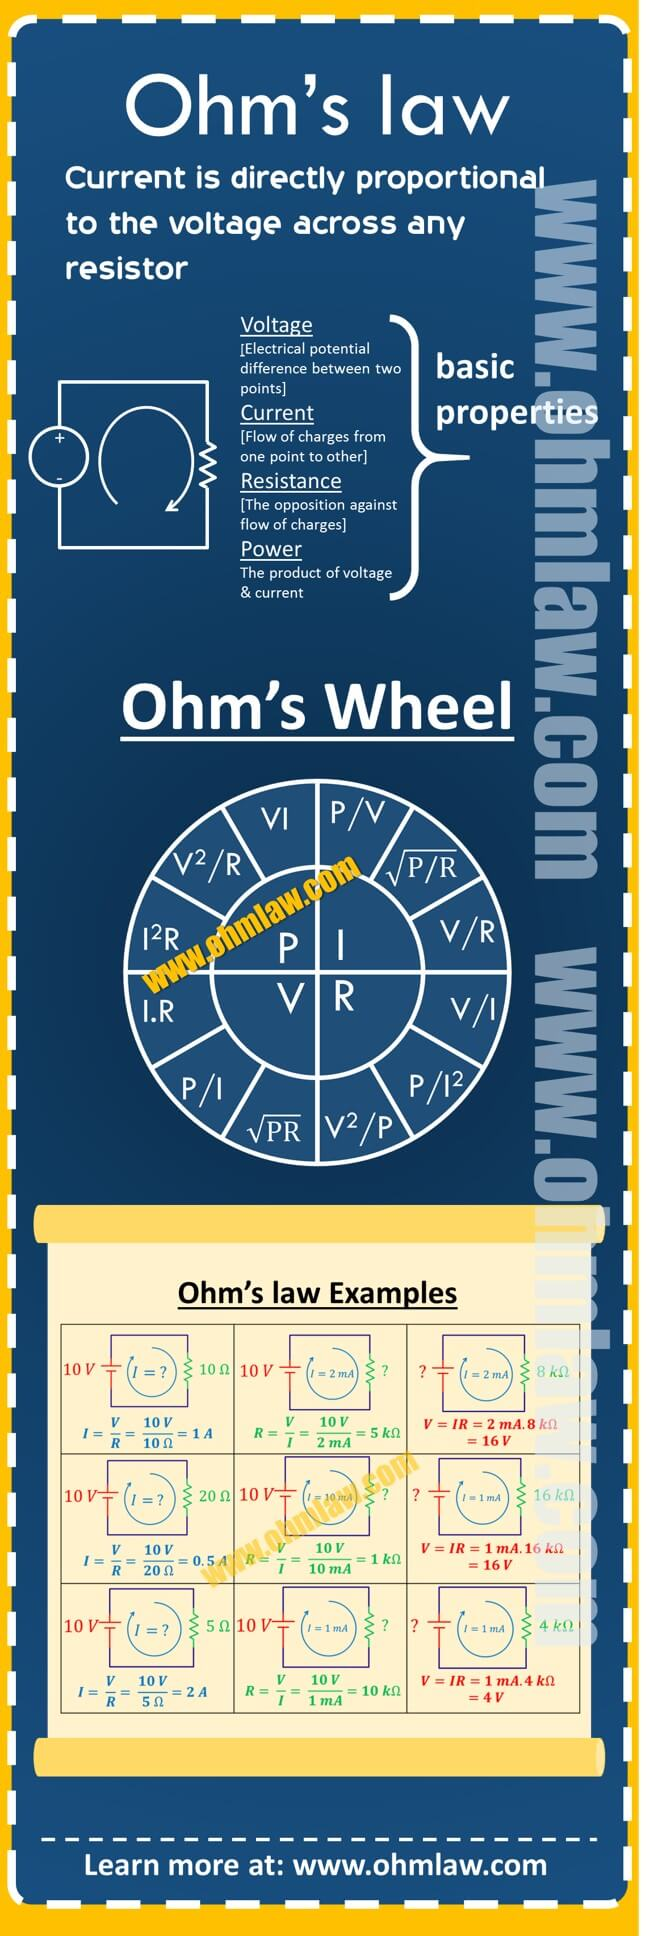 ohms-law-infographic